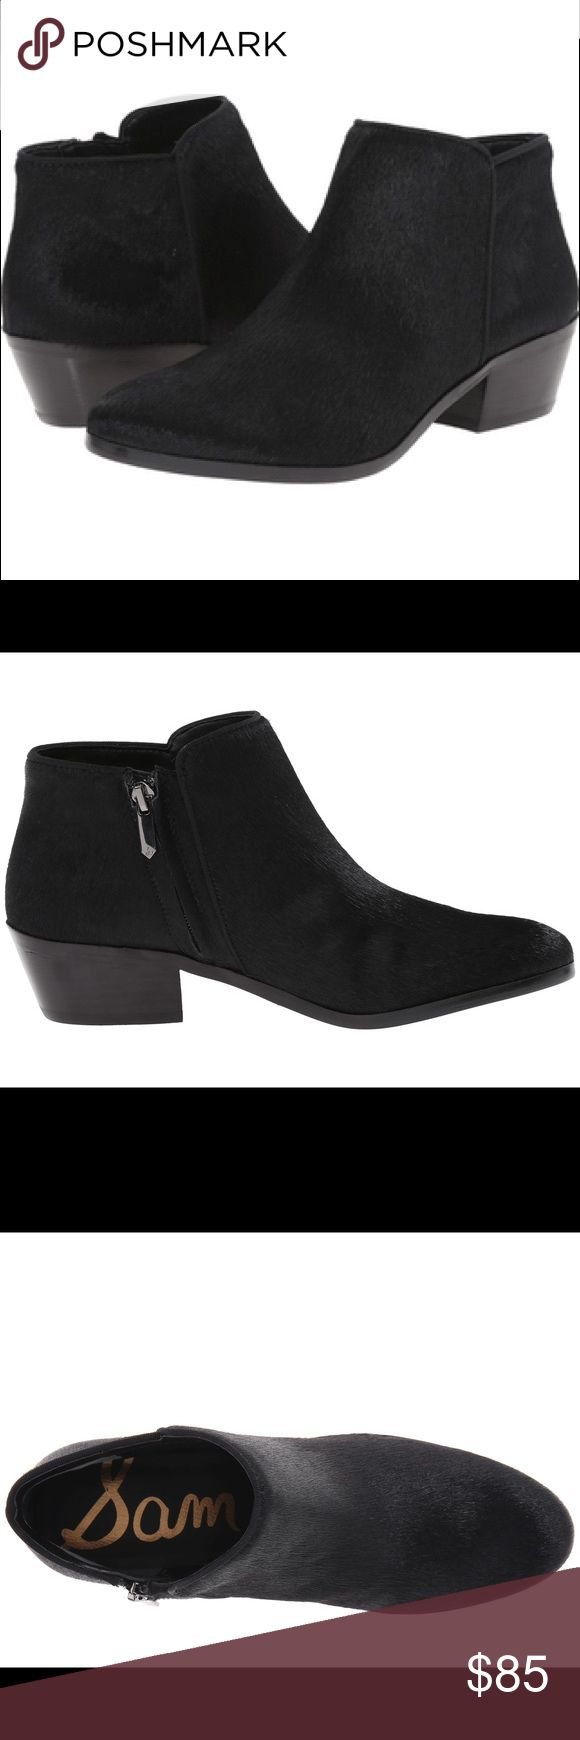 Sam Edelman Petty Ankle Boot in Black Brahma Signature Petty ankle boot is a seasonless staple among starlets and street-style icons alike. Granted 'cult favorite' status for combining comfort, style and versatility, the must-have bootie features a low, stacked heel and ankle zip. These boots are in great condition, worn maybe once or twice, original box included!! Toe: Rounded Toe Heel Height: 1.75 inches Material: Brahma Hair Shaft Length: 3 inches Lining Material: Synthetic Sam Edelman…